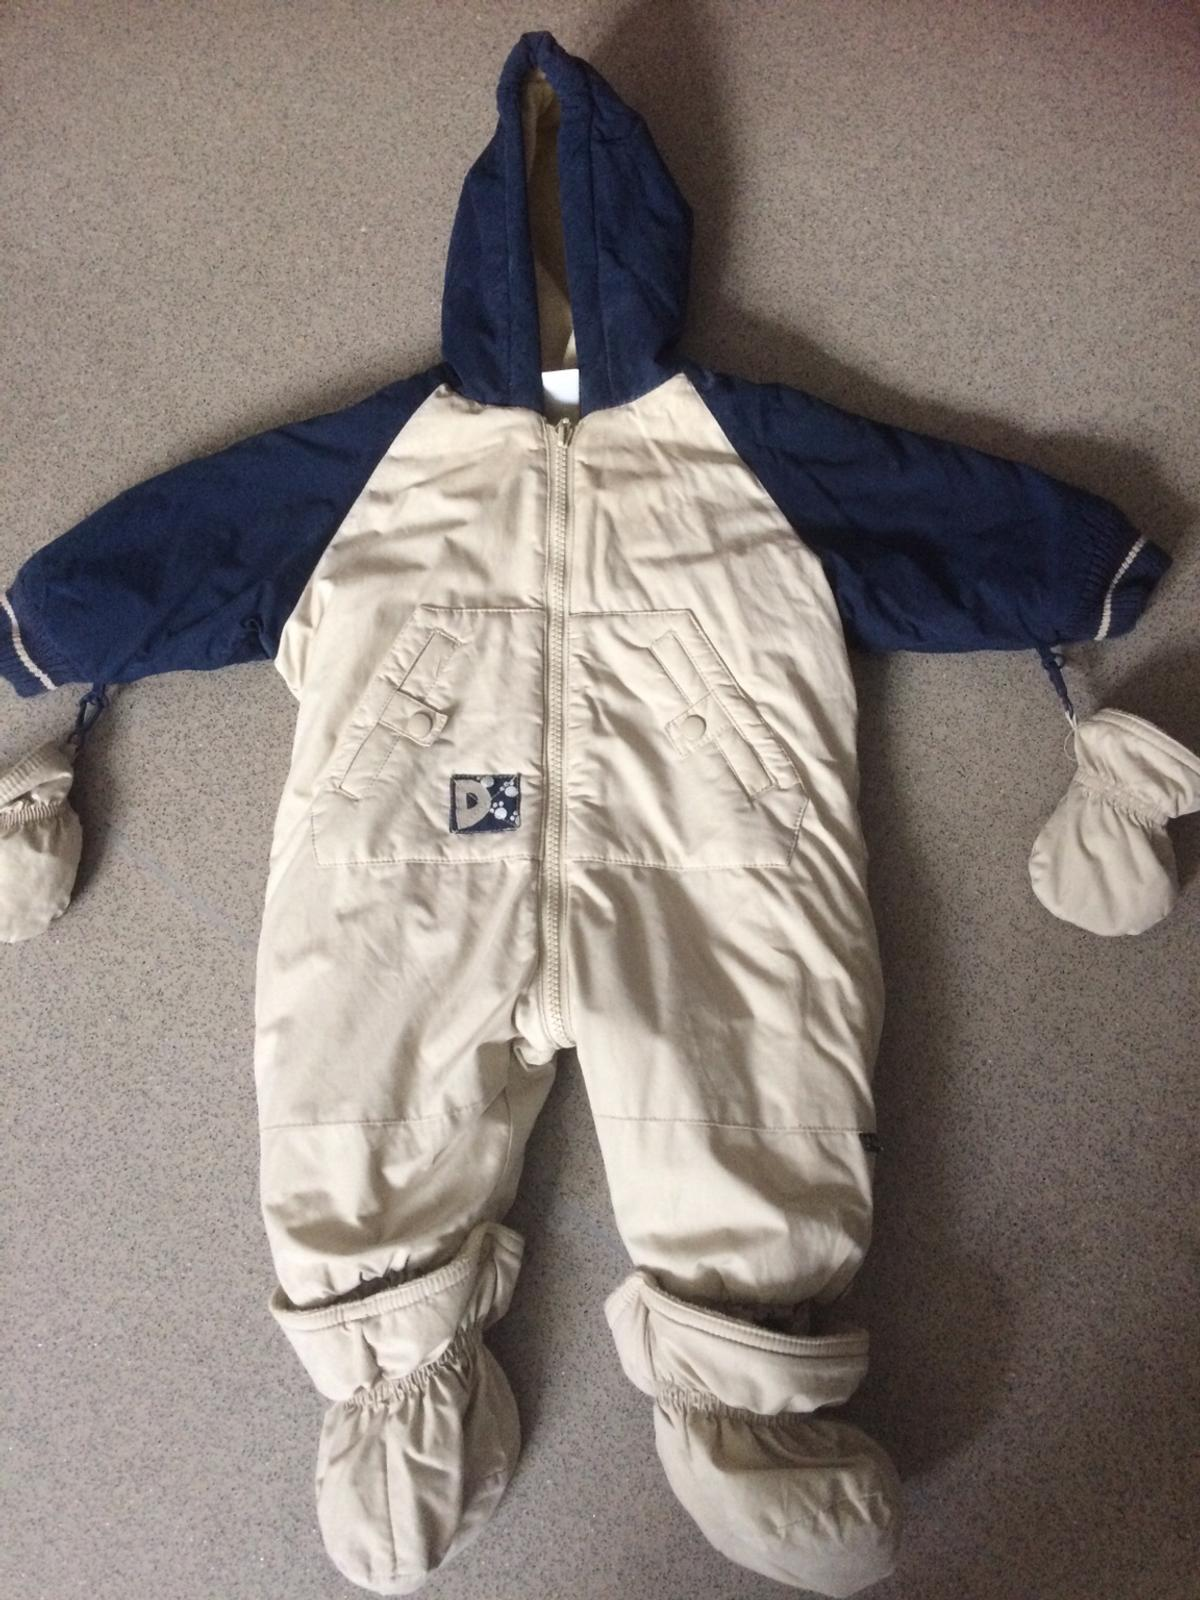 3-6mths snow suit with mittens.  On other selling sites